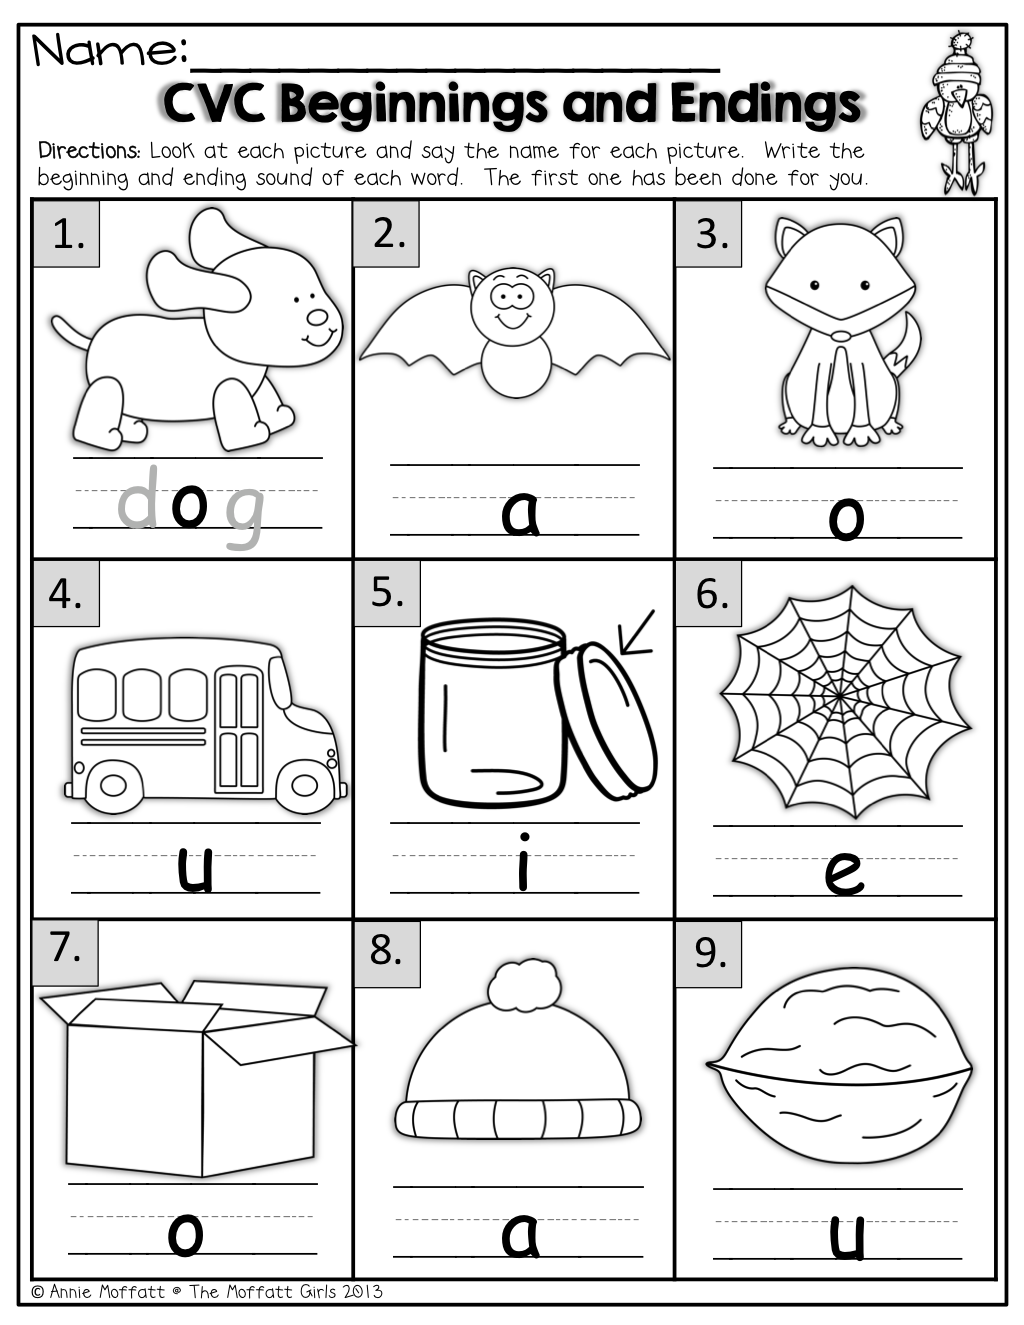 worksheet Initial Sound Worksheets beginning and ending sounds kinderland collaborative sounds